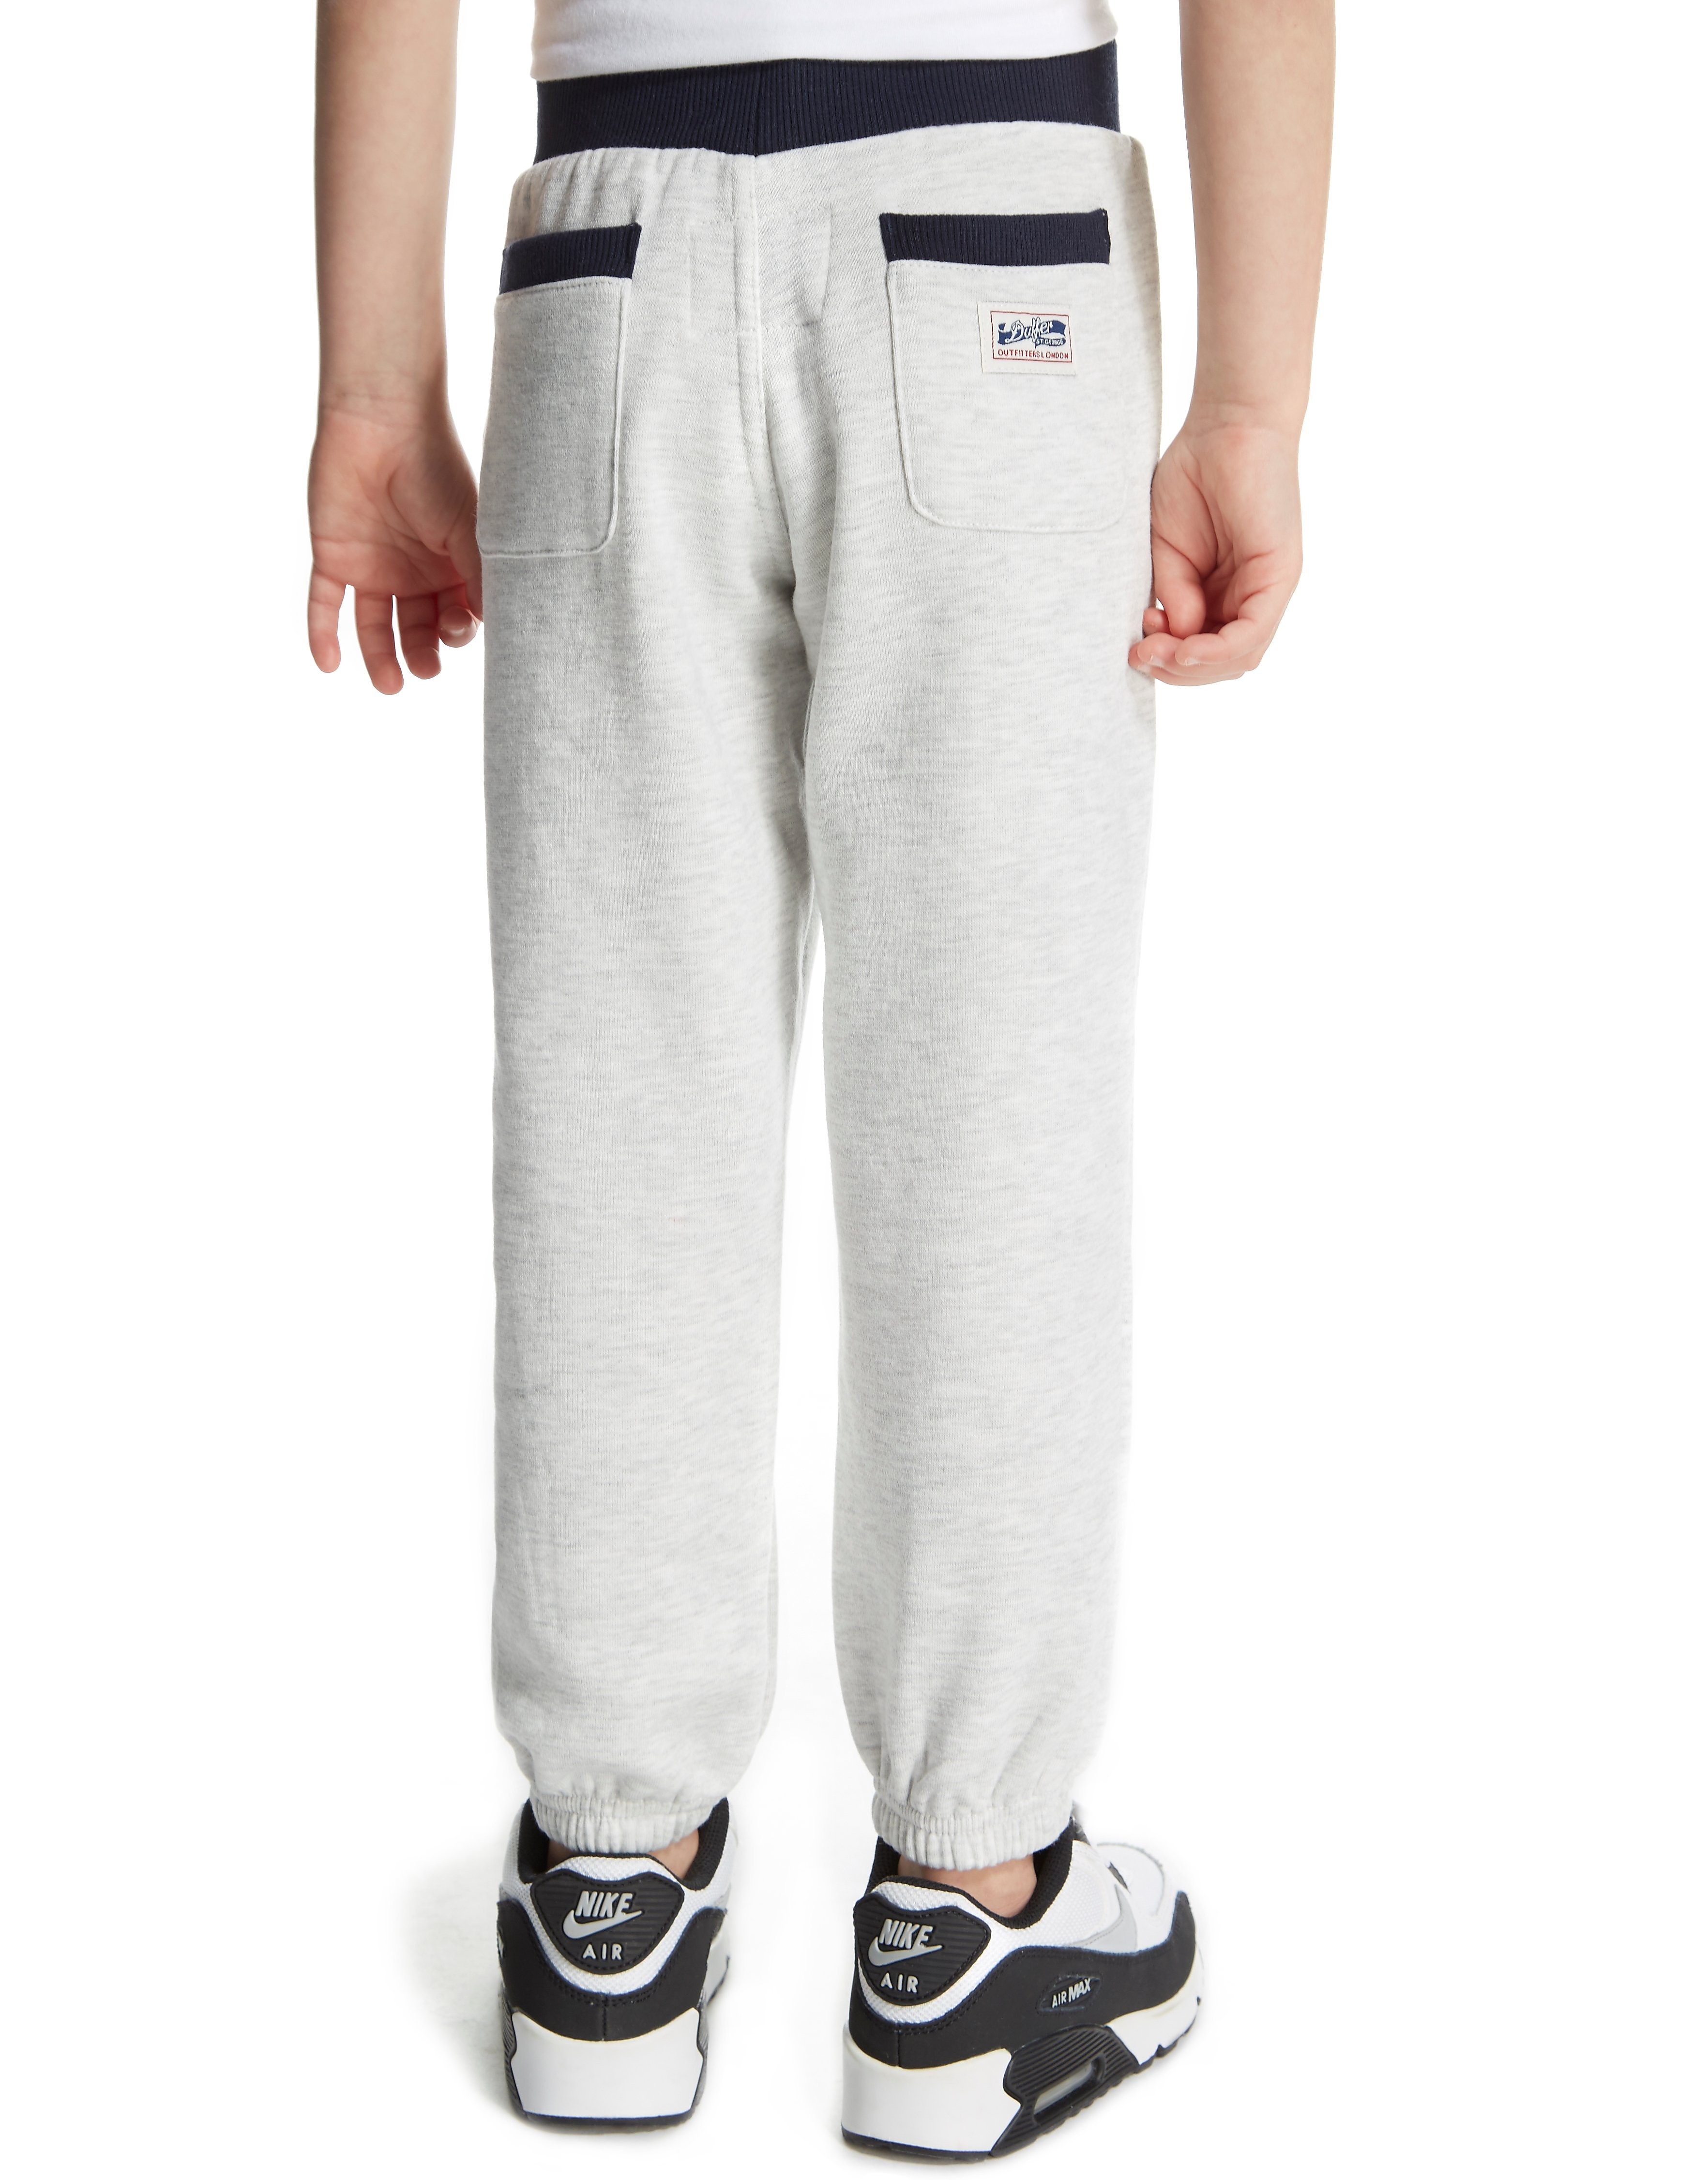 Duffer of St George New Standard Jogging Pants Children